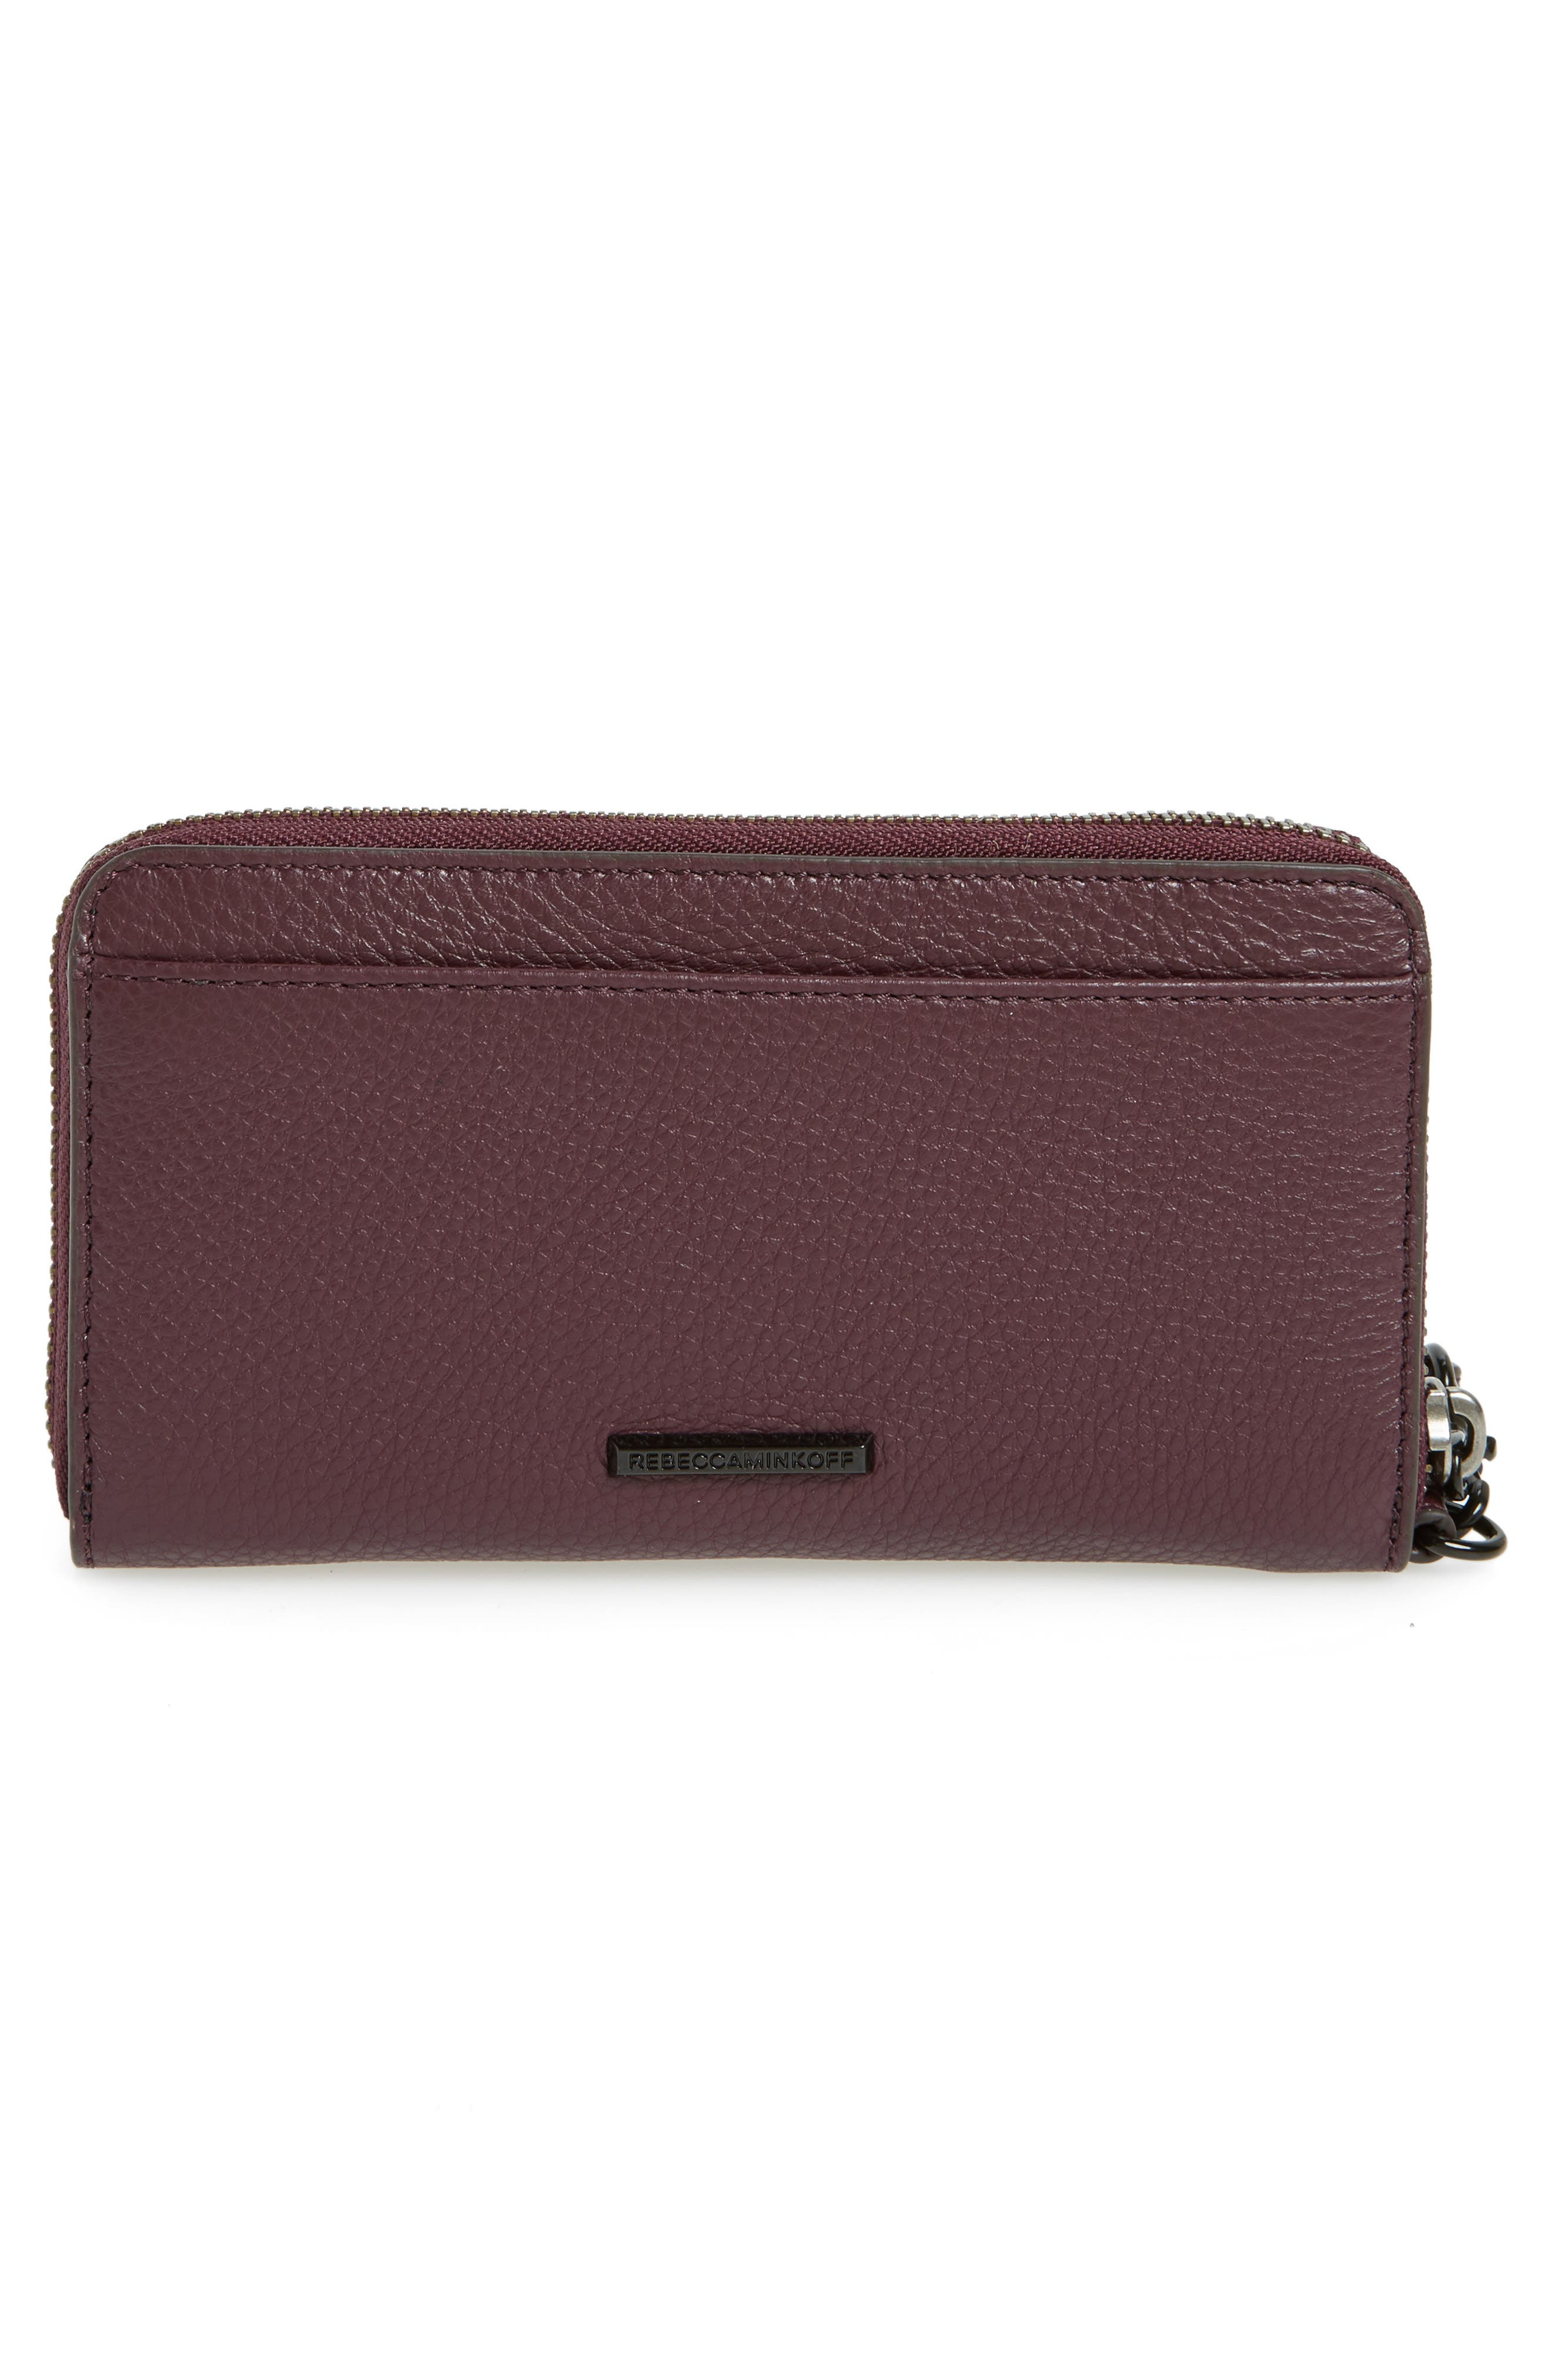 Vanity Leather Smartphone Wristlet,                             Alternate thumbnail 3, color,                             610